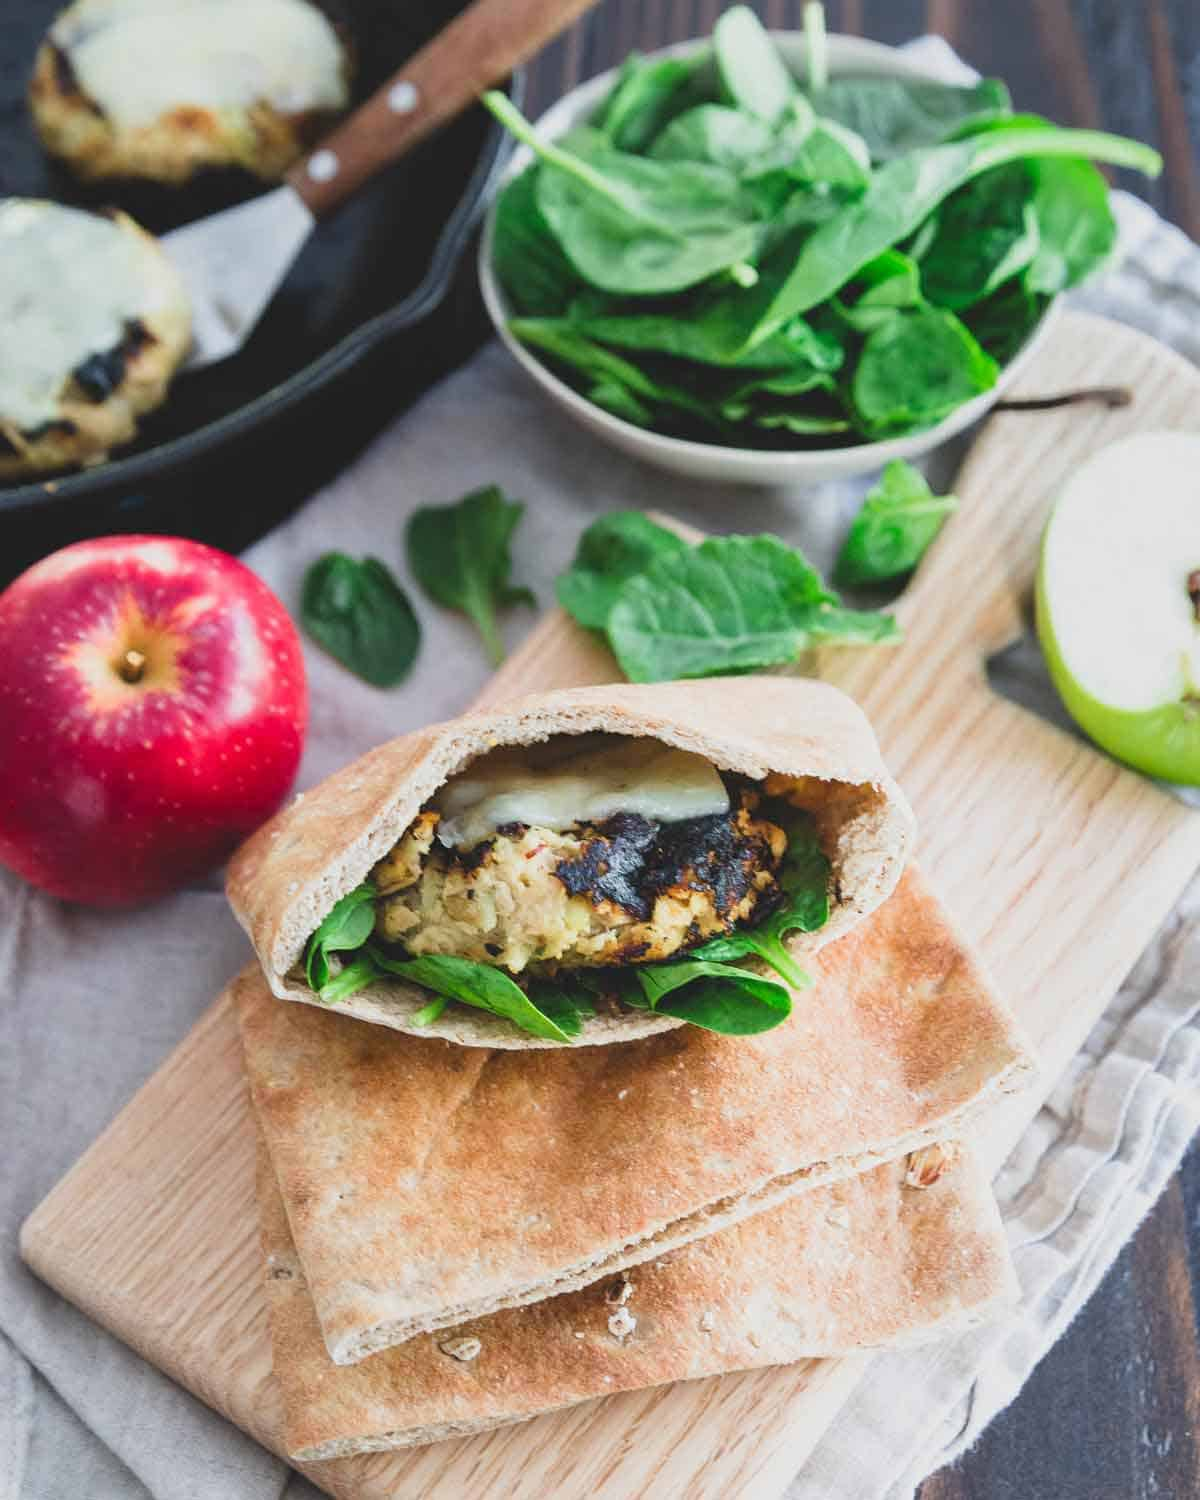 Enjoy these apple cheddar tuna patties in a pita pocket, on a salad or in a bun for an easy lunch.